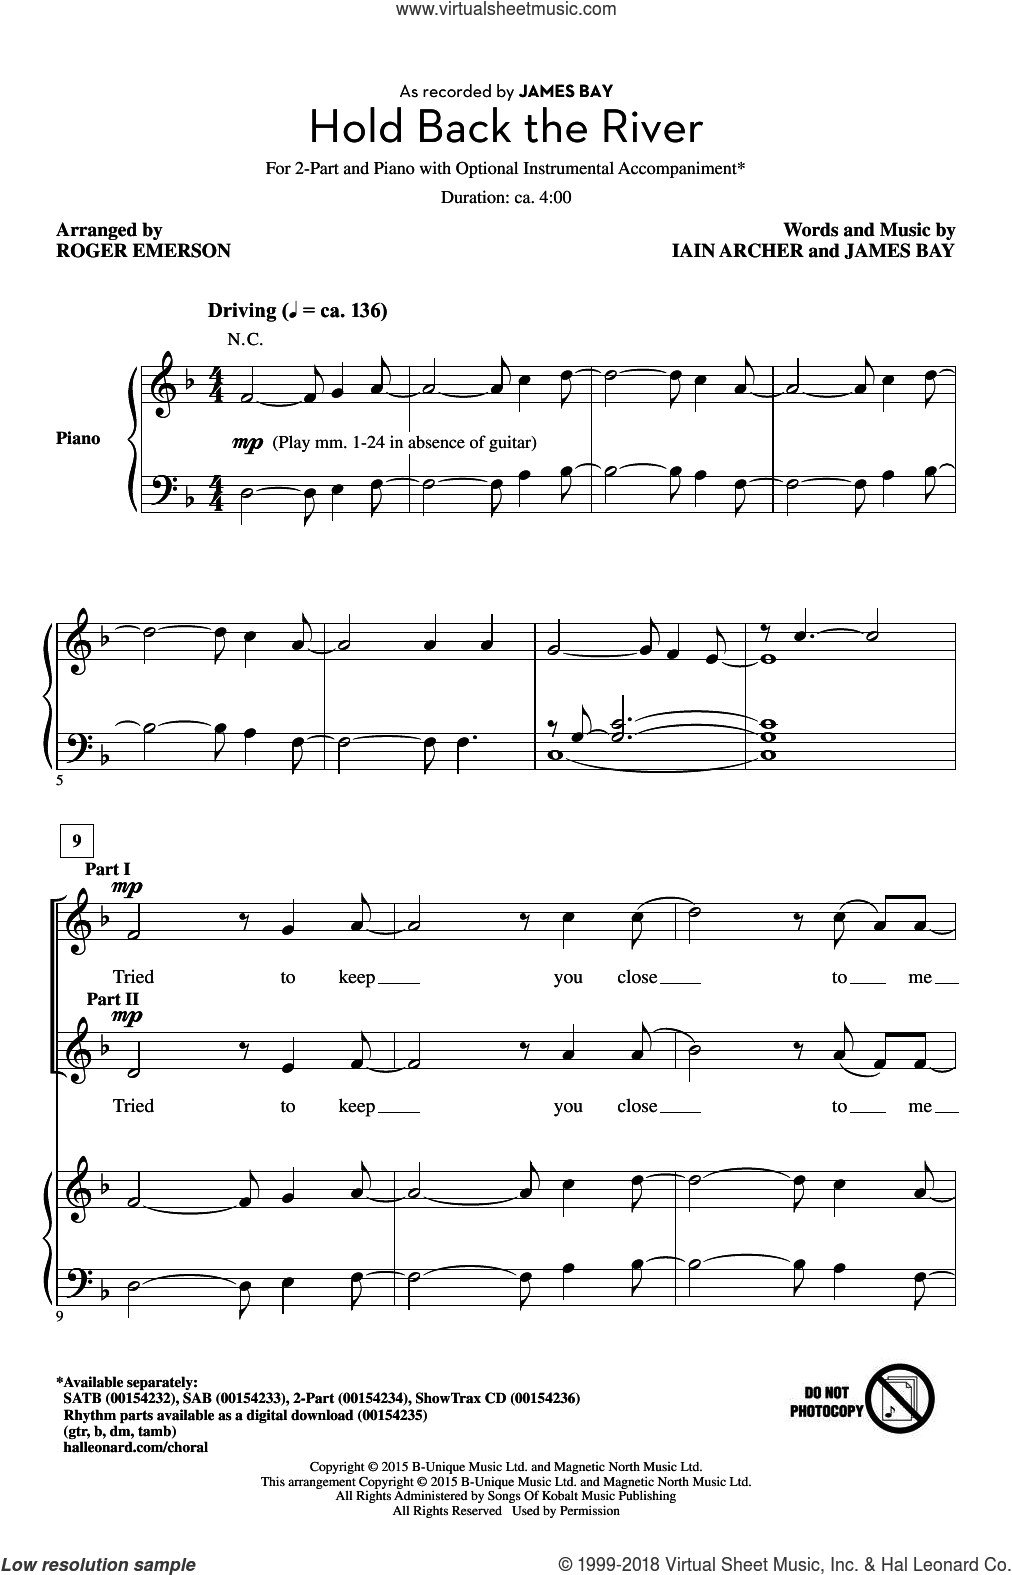 Hold Back The River sheet music for choir (2-Part) by Roger Emerson, Iain Archer and James Bay, intermediate duet. Score Image Preview.